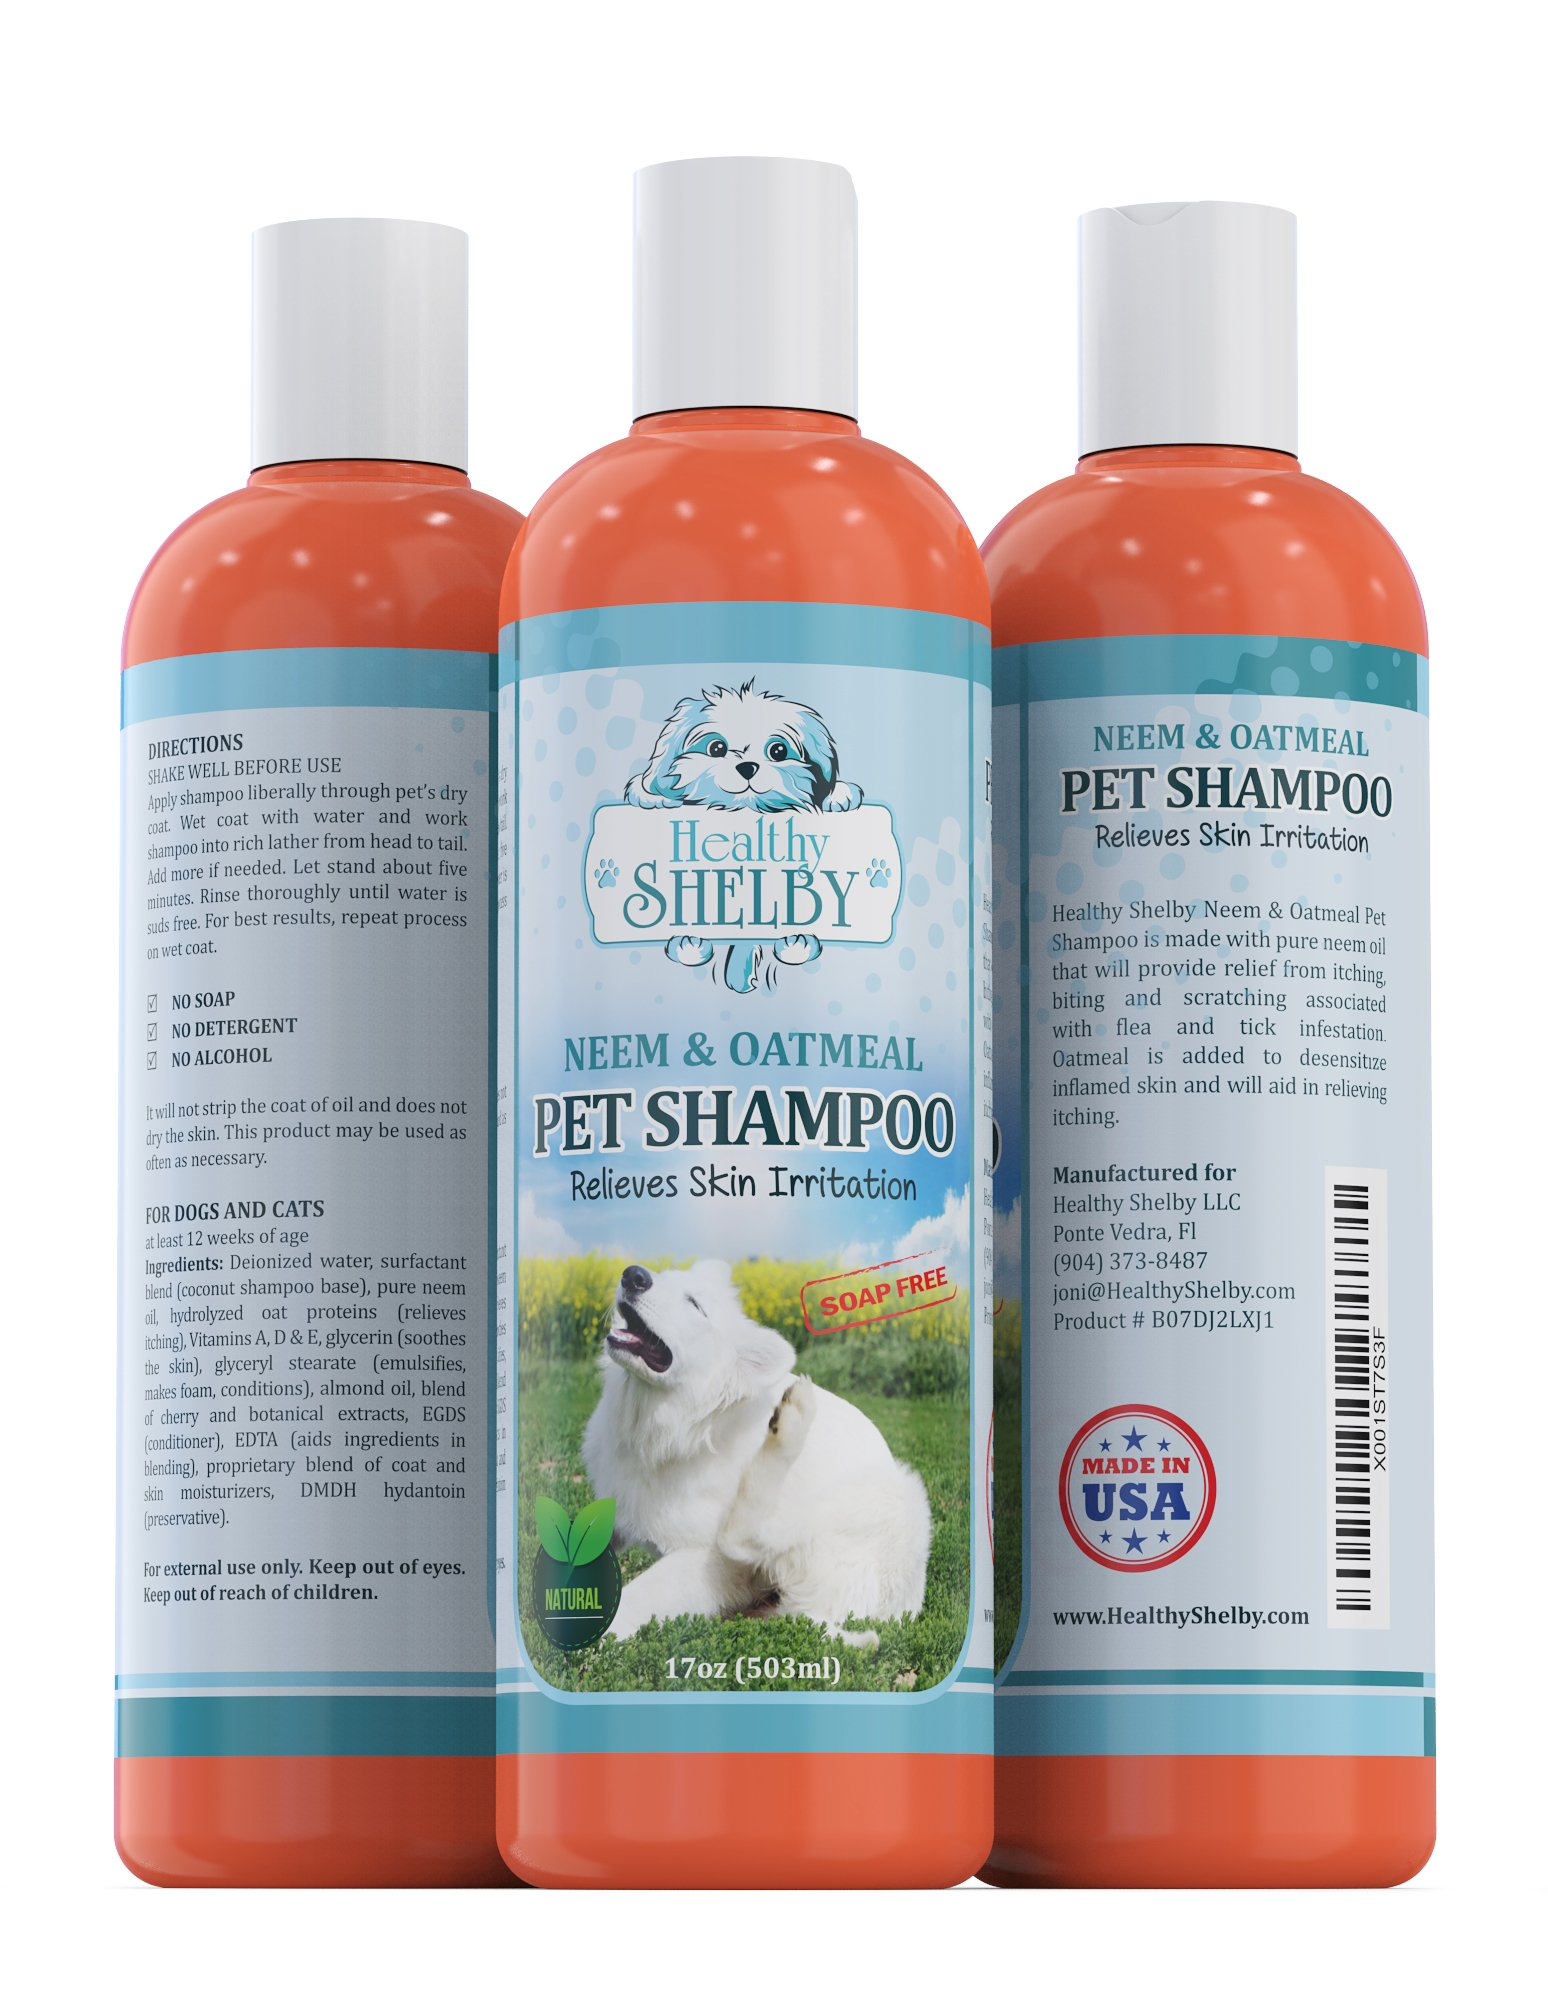 Healthy Shelby Neem & Oatmeal Pet Shampoo, Shampoo For Cats and Dogs, Soap and Detergent Free, Best Dog Shampoo For Itchy Skin, Dog Shampoo and Conditioner In One